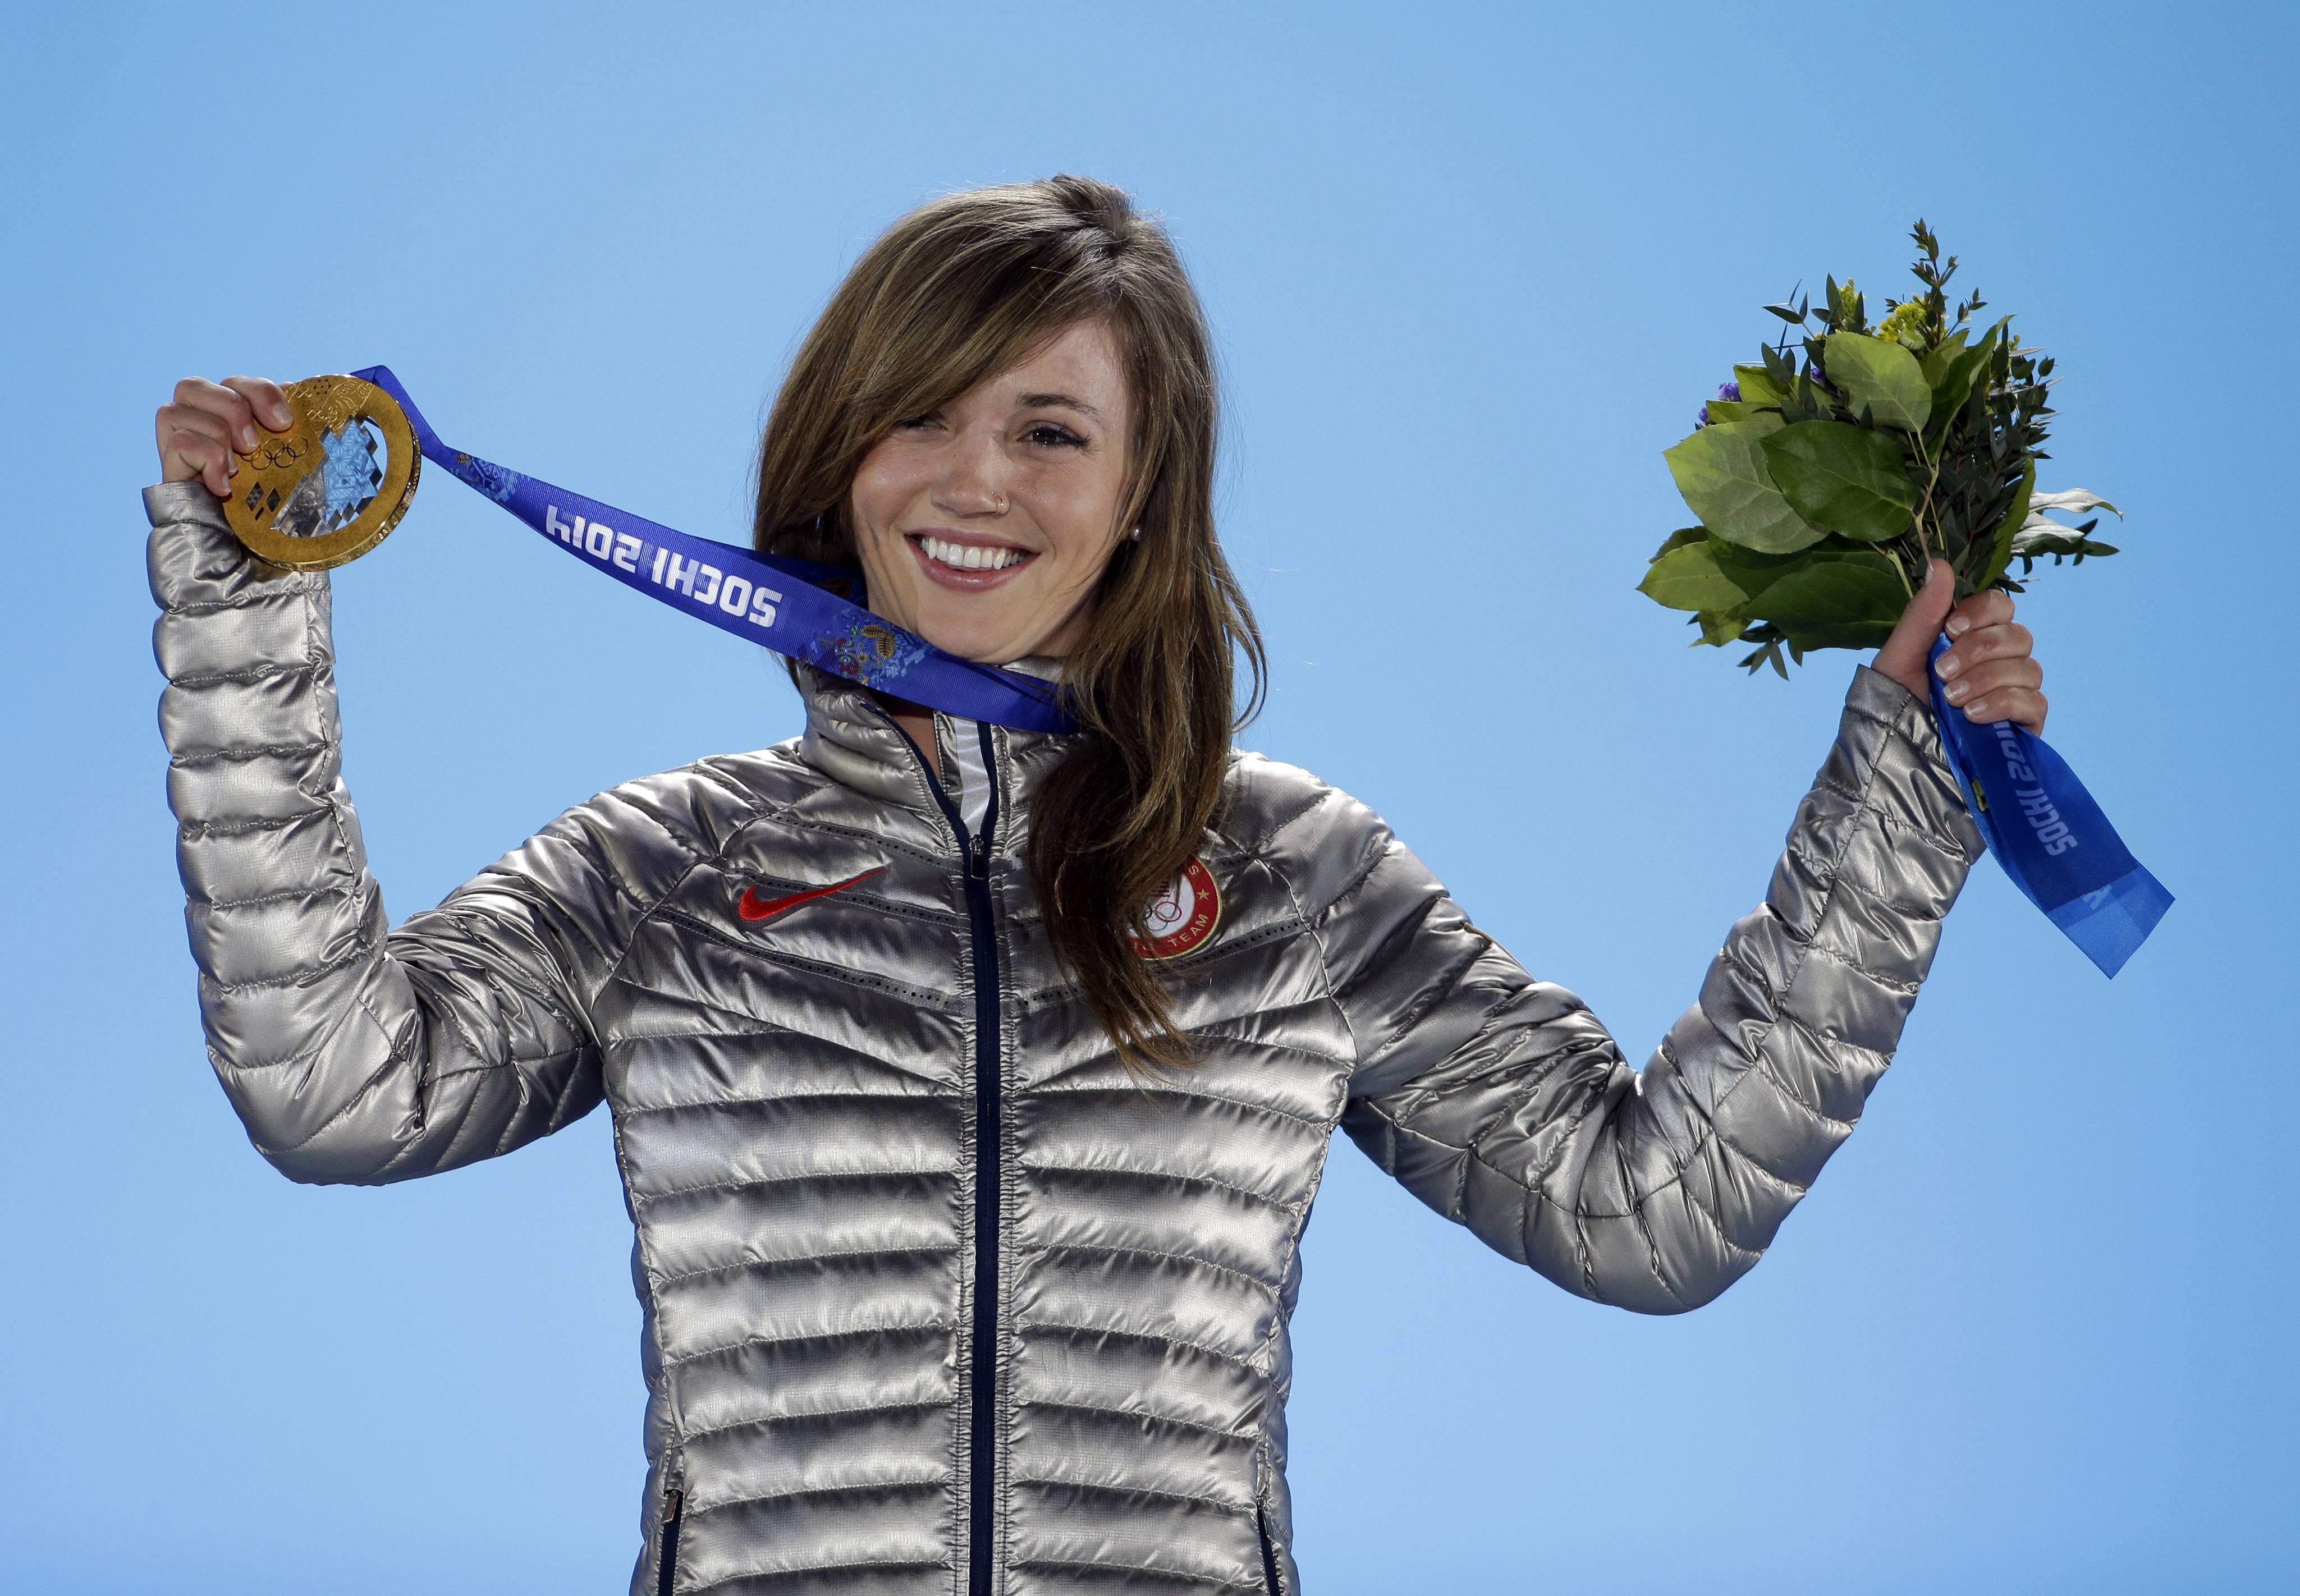 Women's snowboard halfpipe gold medalist Kaitlyn Farrington of the United States smiles during the medals ceremony.